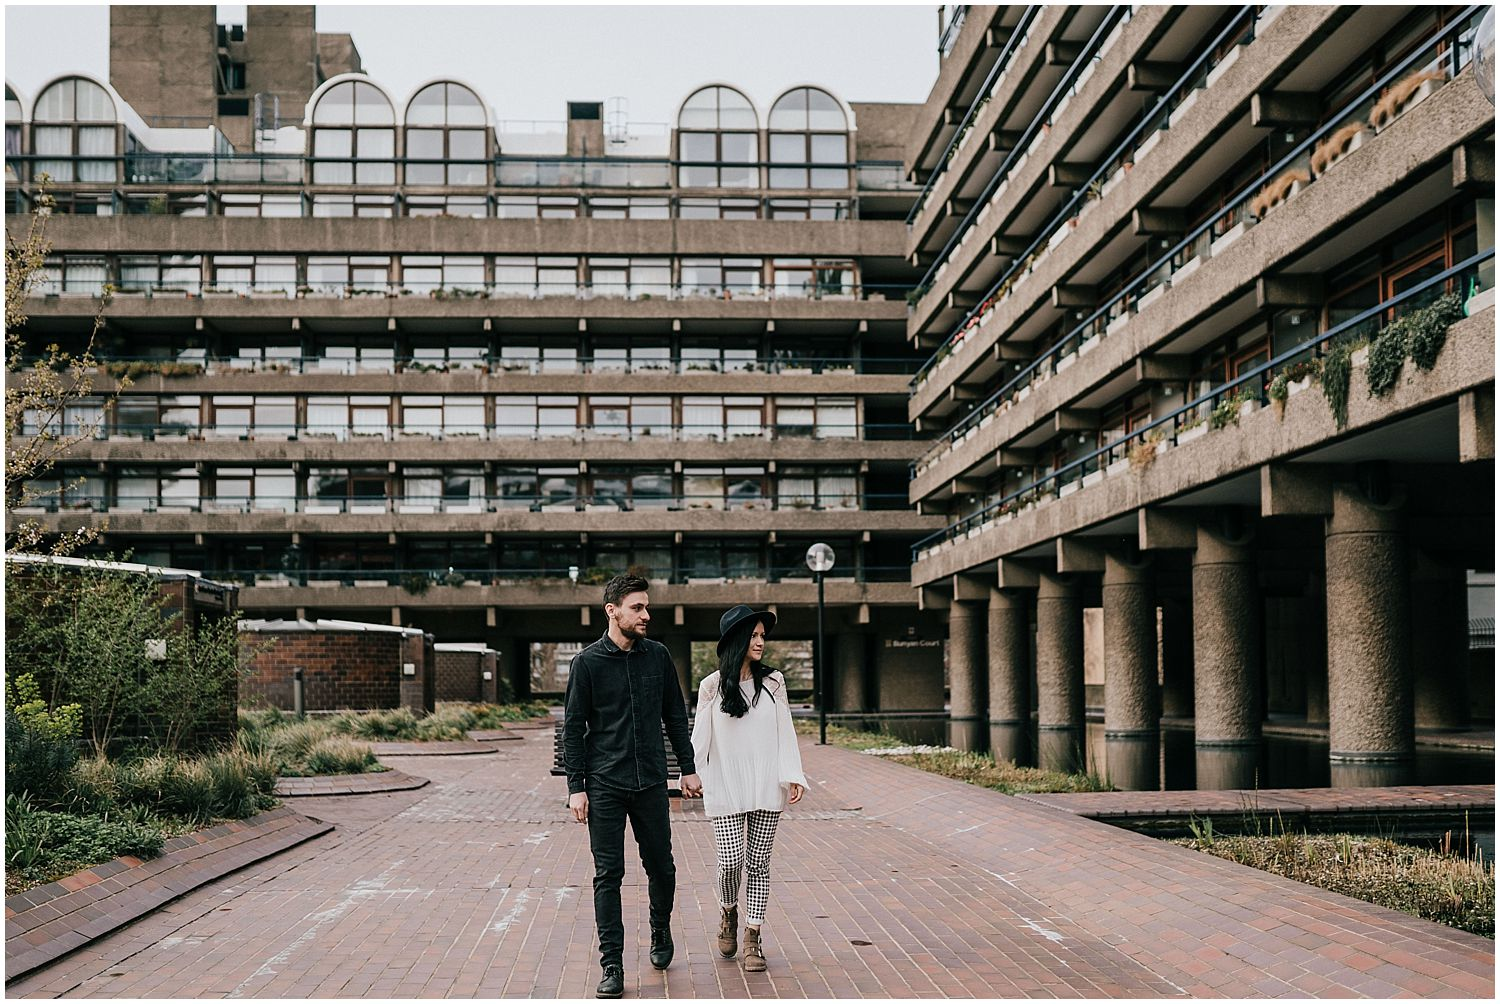 Barbican Centre London engagement shoot_0001.jpg